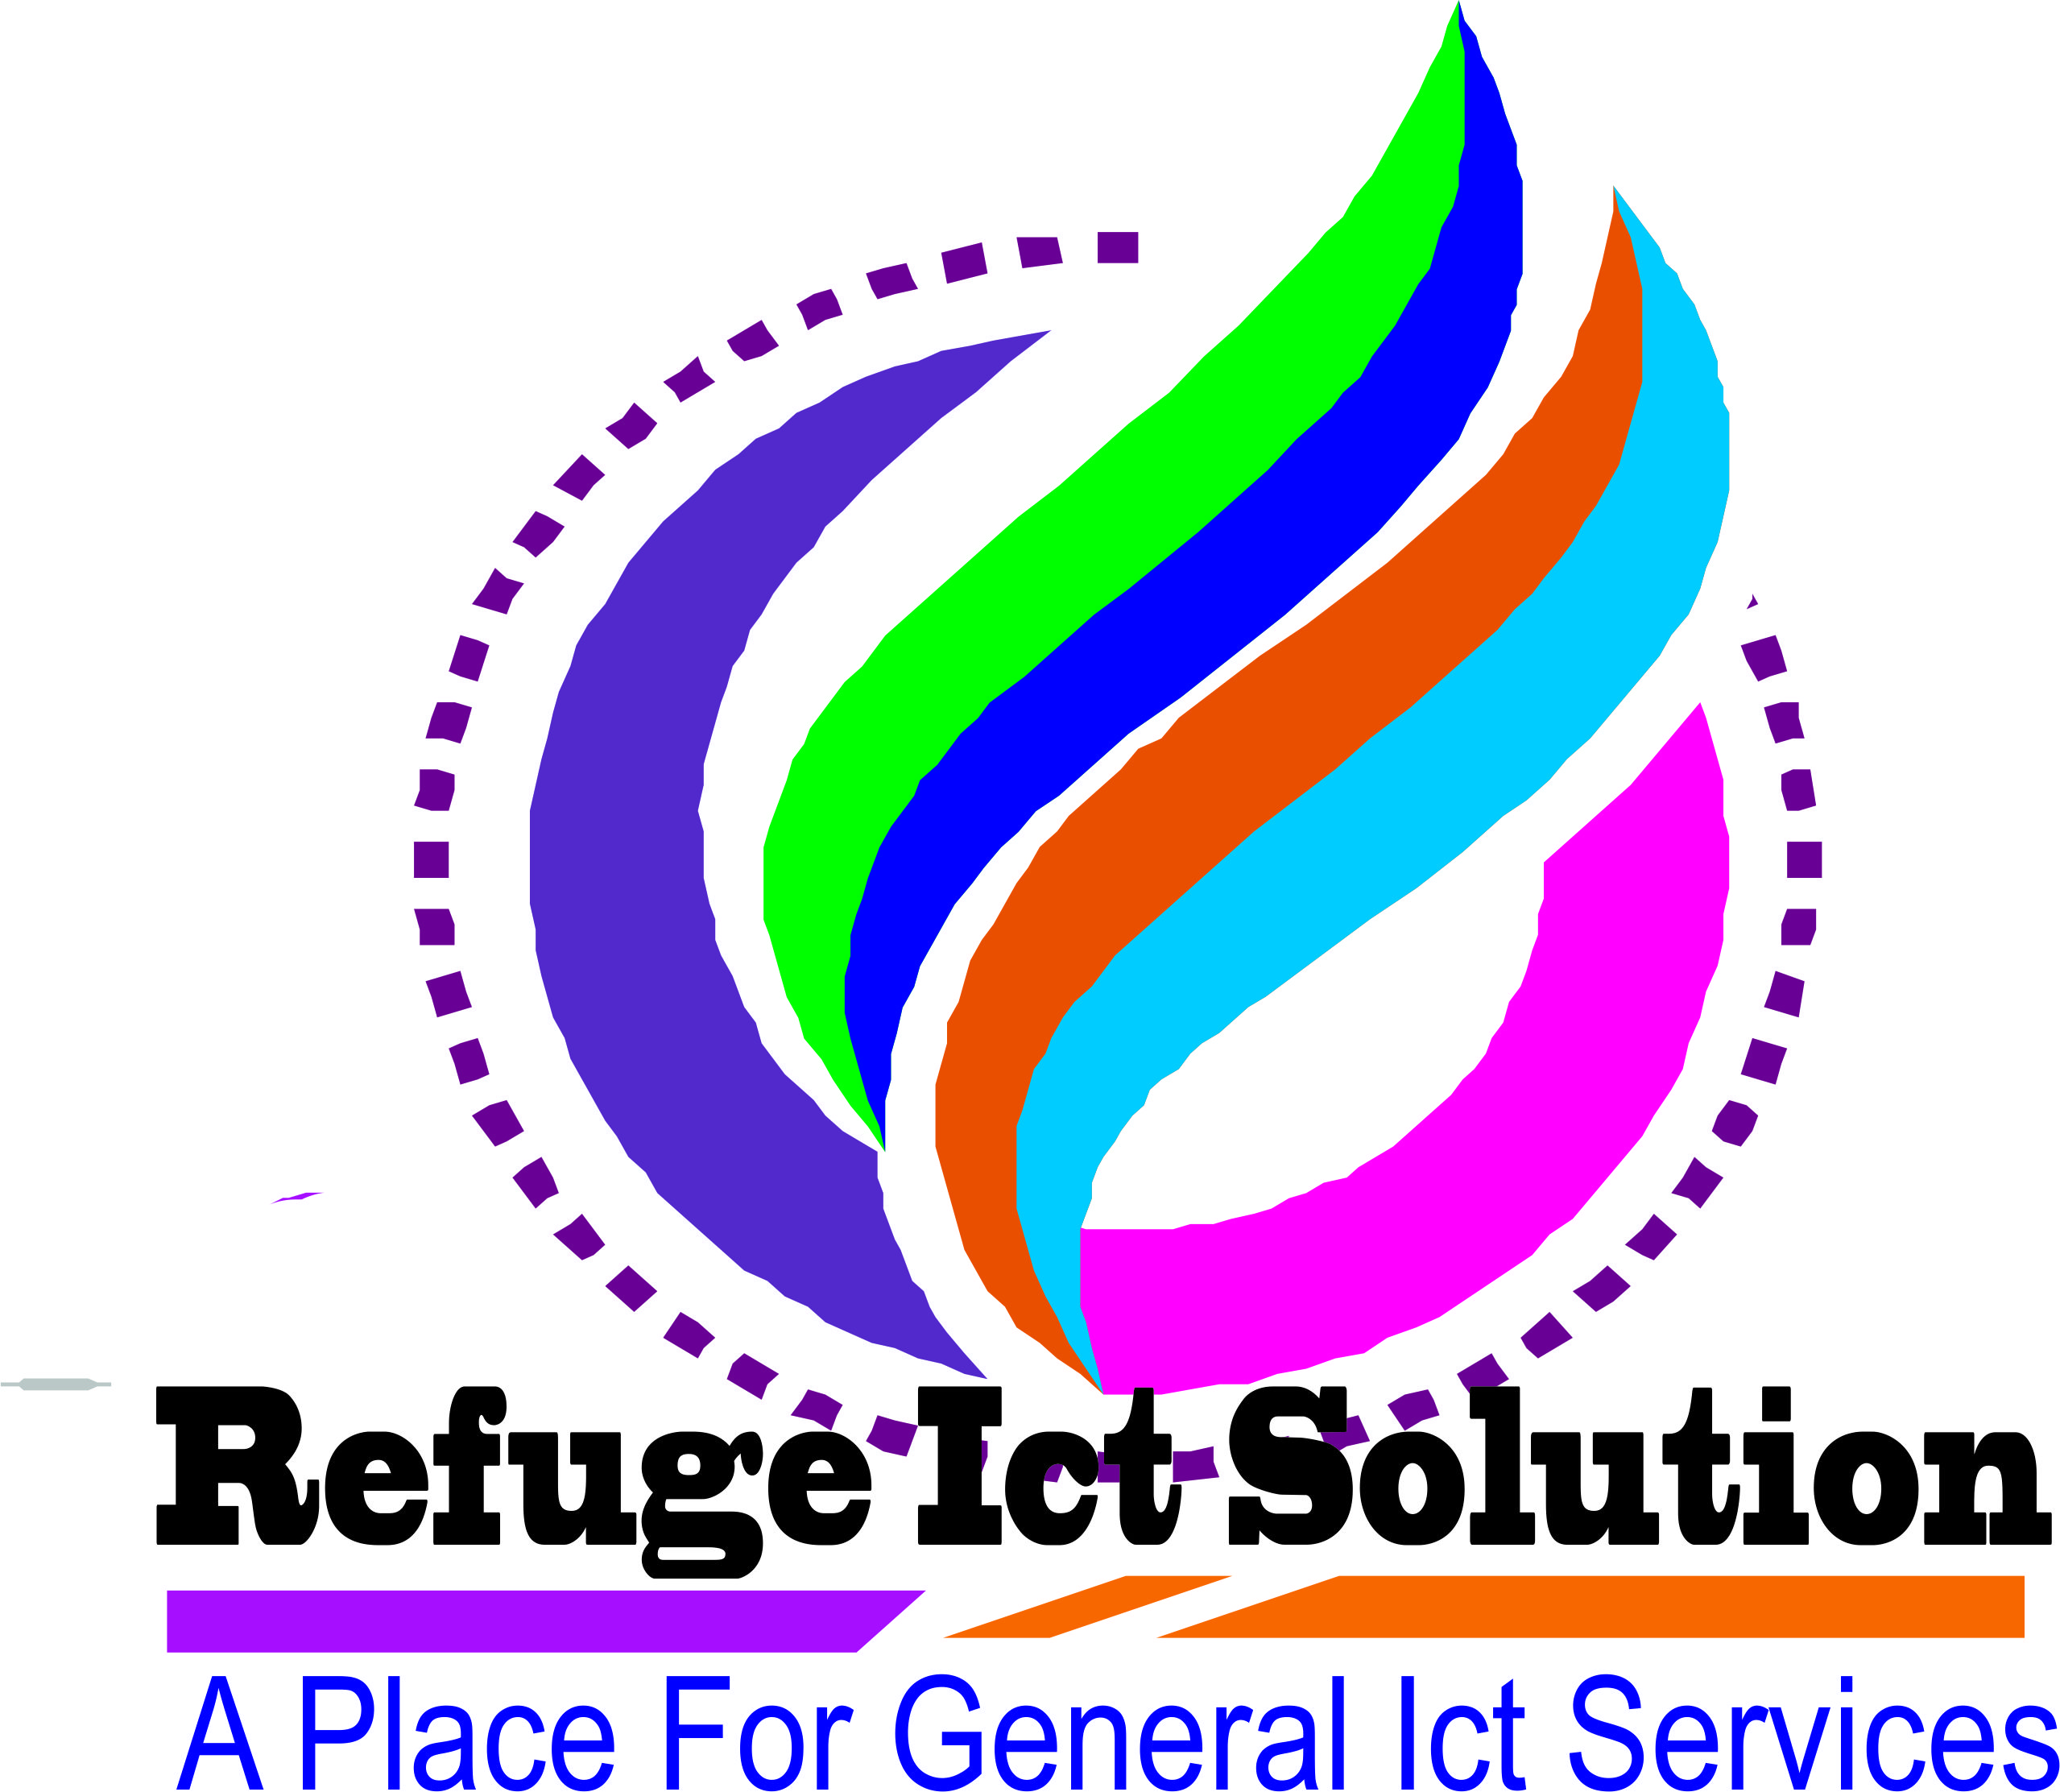 refugeictsolution.com.ng